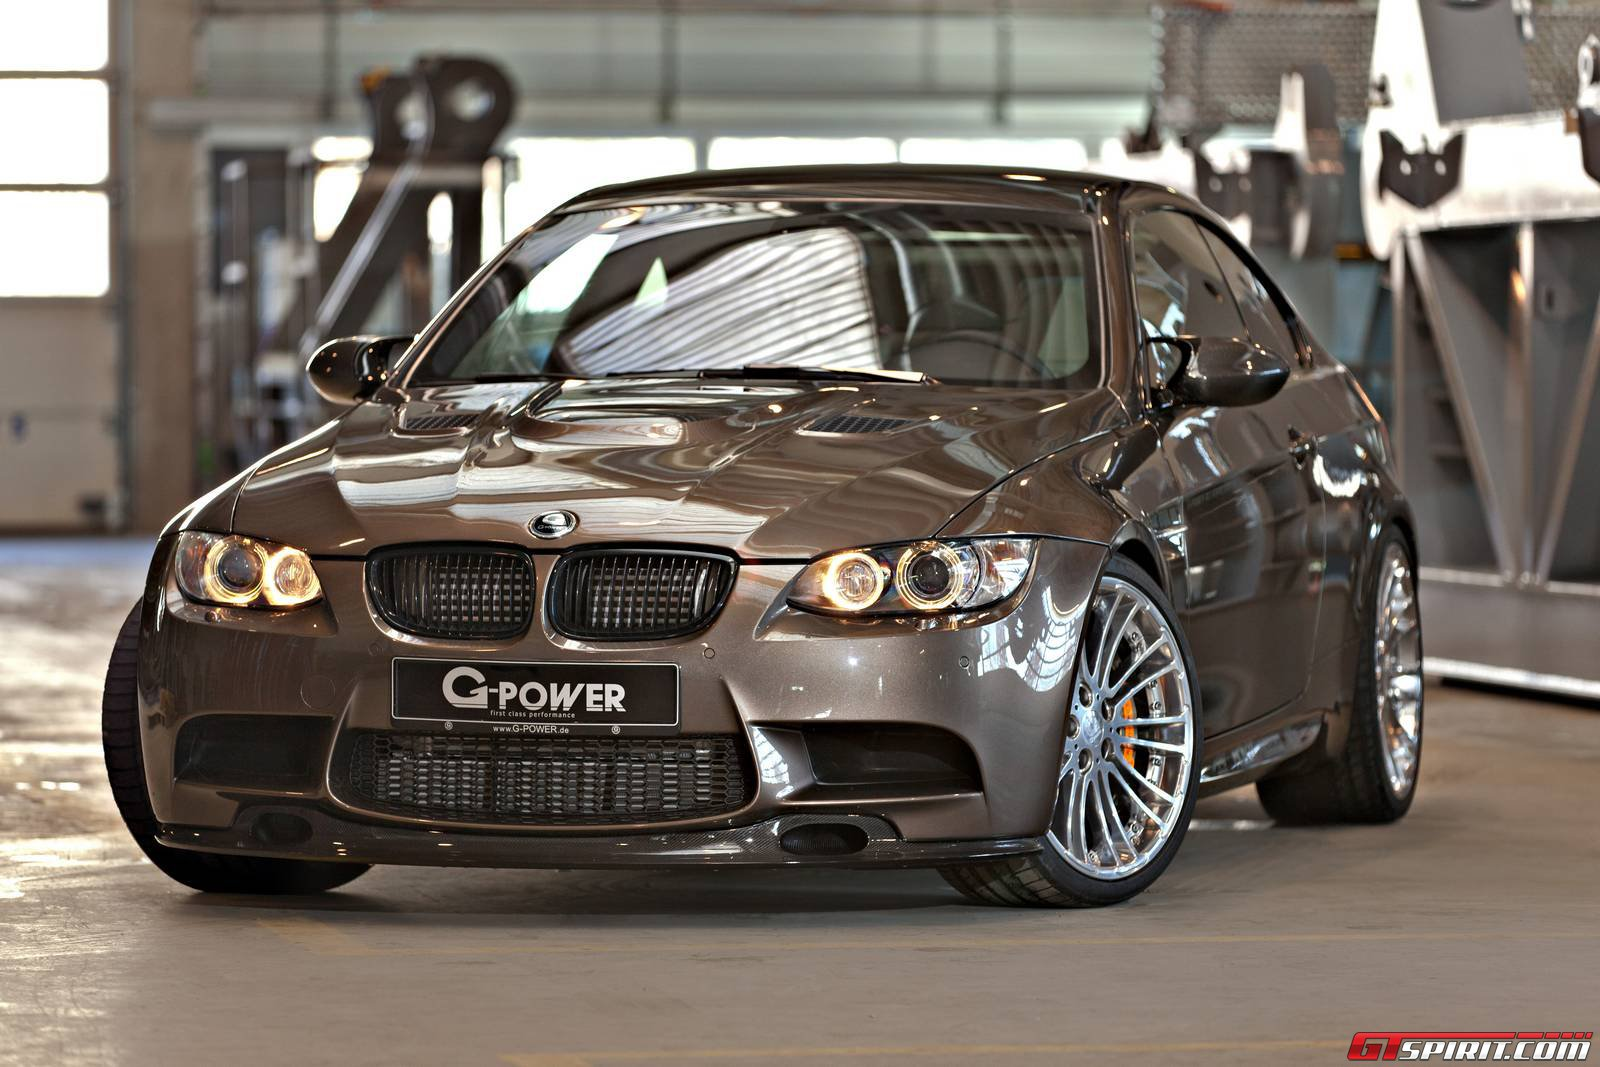 official 720hp g power bmw m3 hurricane rs gtspirit. Black Bedroom Furniture Sets. Home Design Ideas